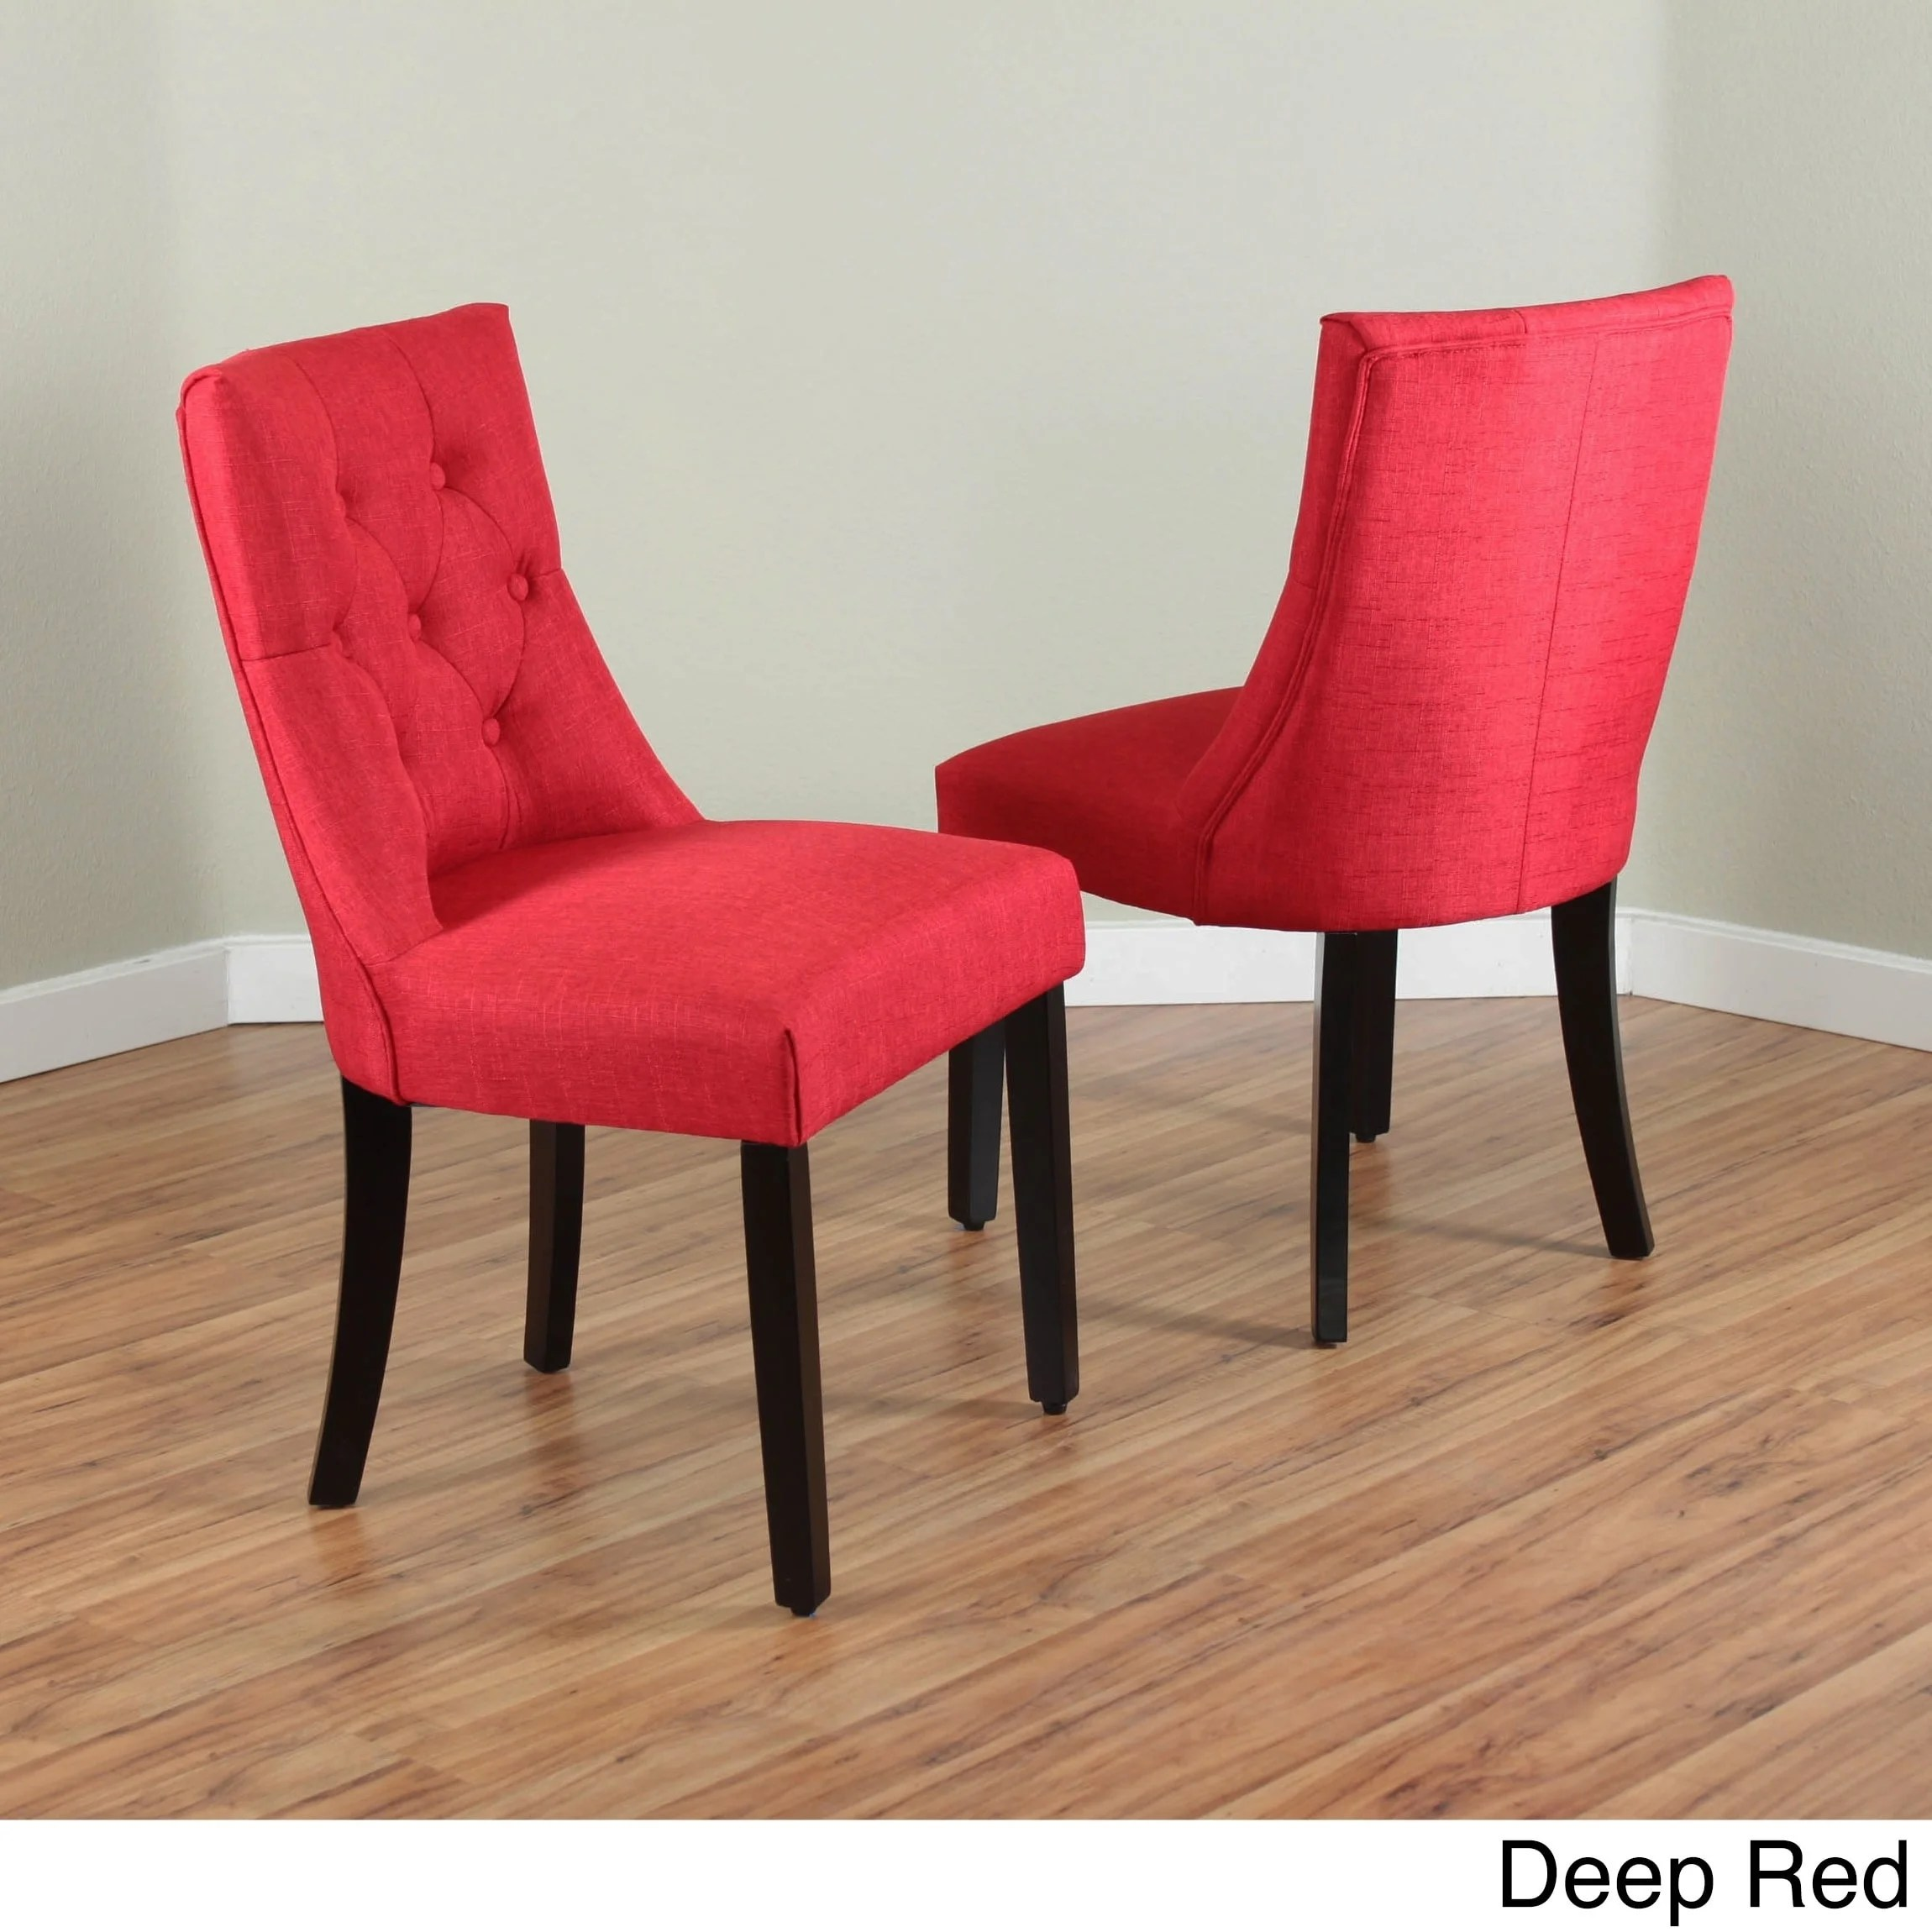 red tufted dining chair golden lift chairs canada shop bellcrest upholstered set of 2 free shipping